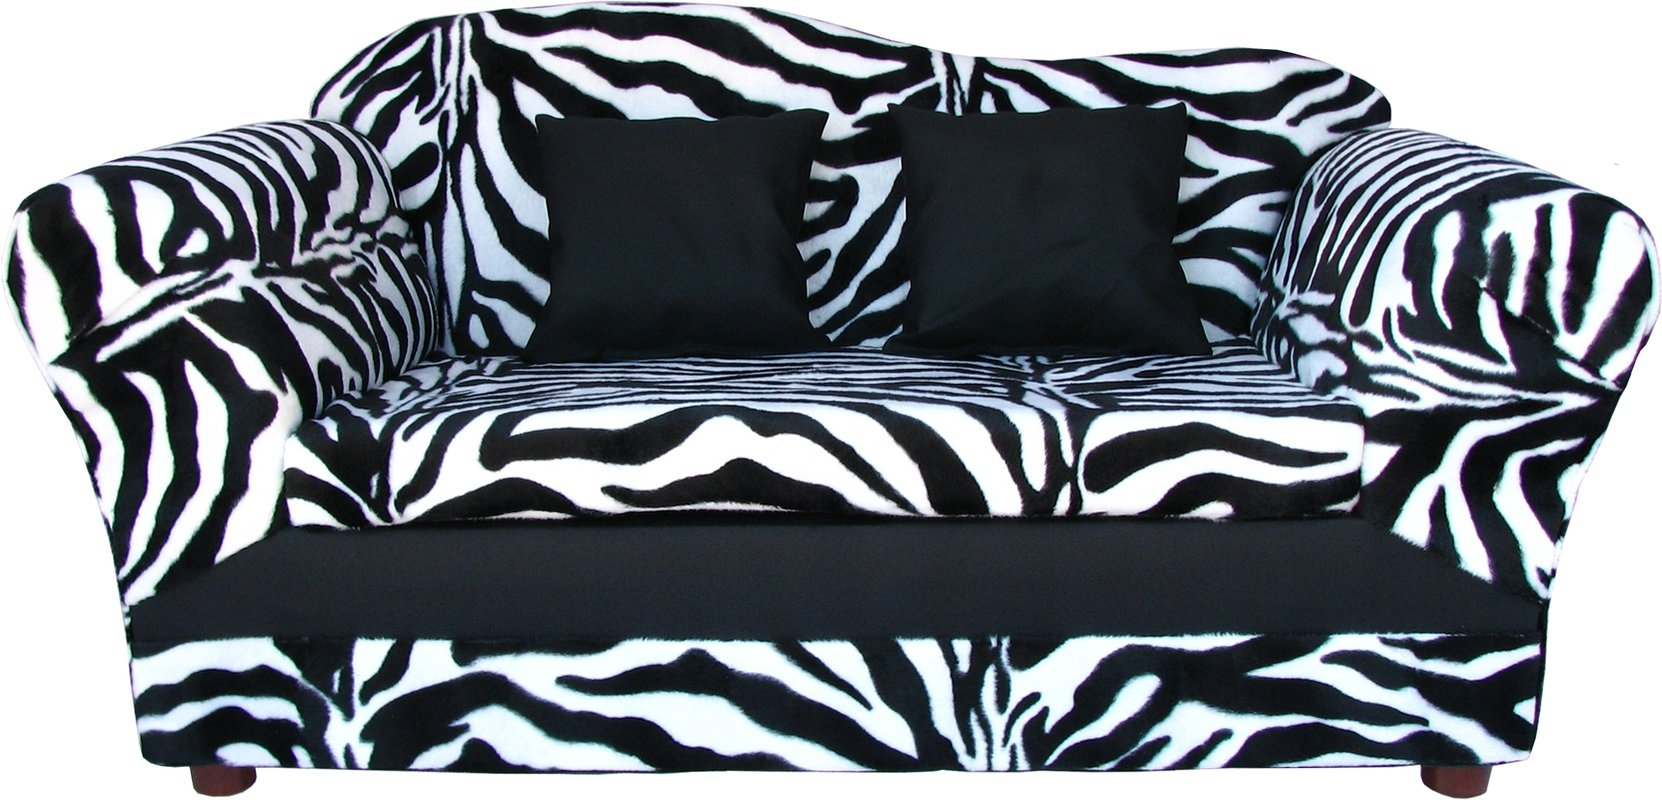 15 Kids Sofa Chair And Ottoman Set Zebra Sofa Ideas